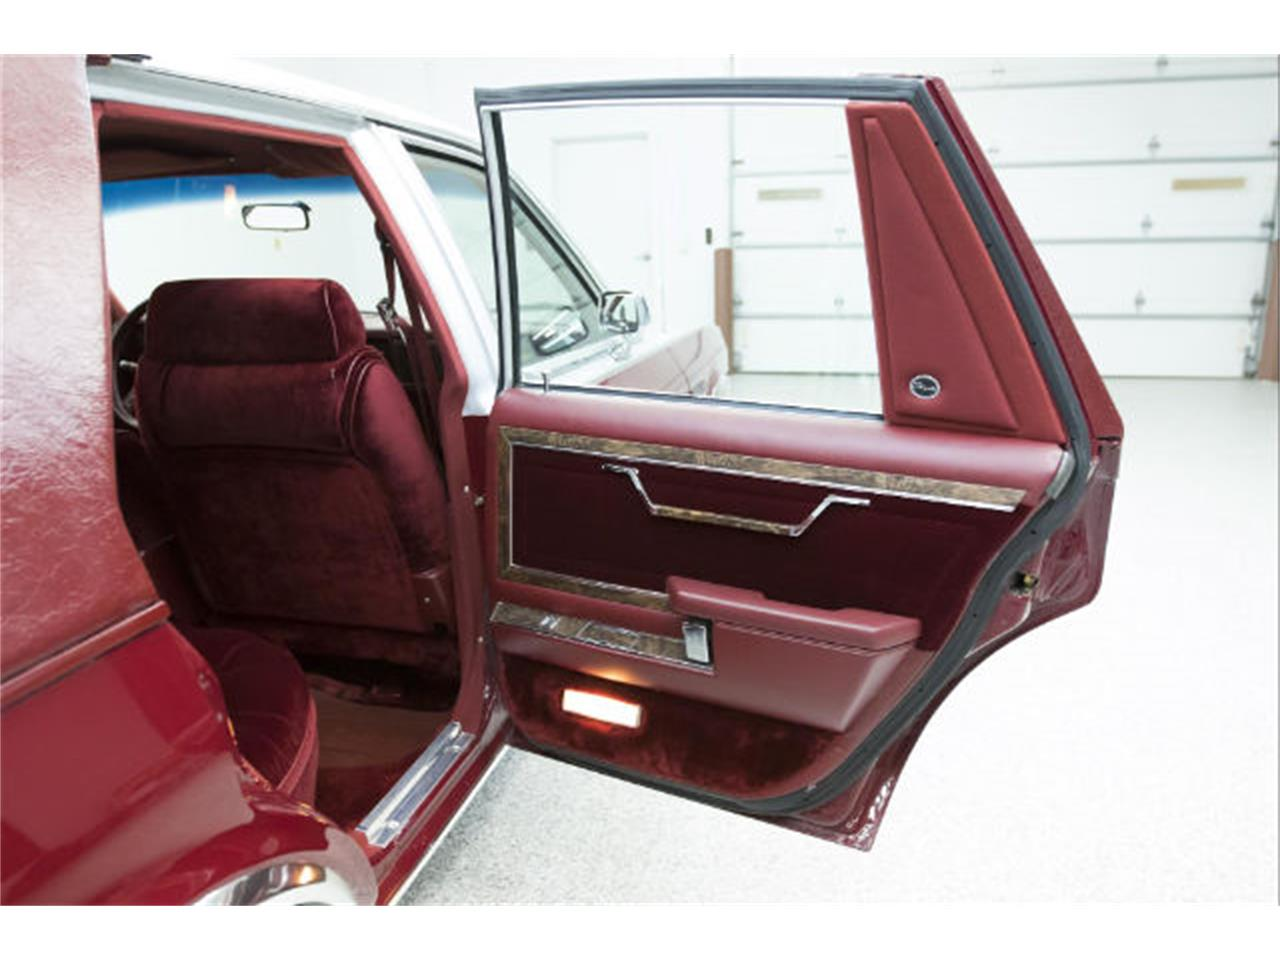 Large Picture of '86 Chrysler Fifth Avenue - $13,975.00 Offered by Frankman Motor Company - MFNZ